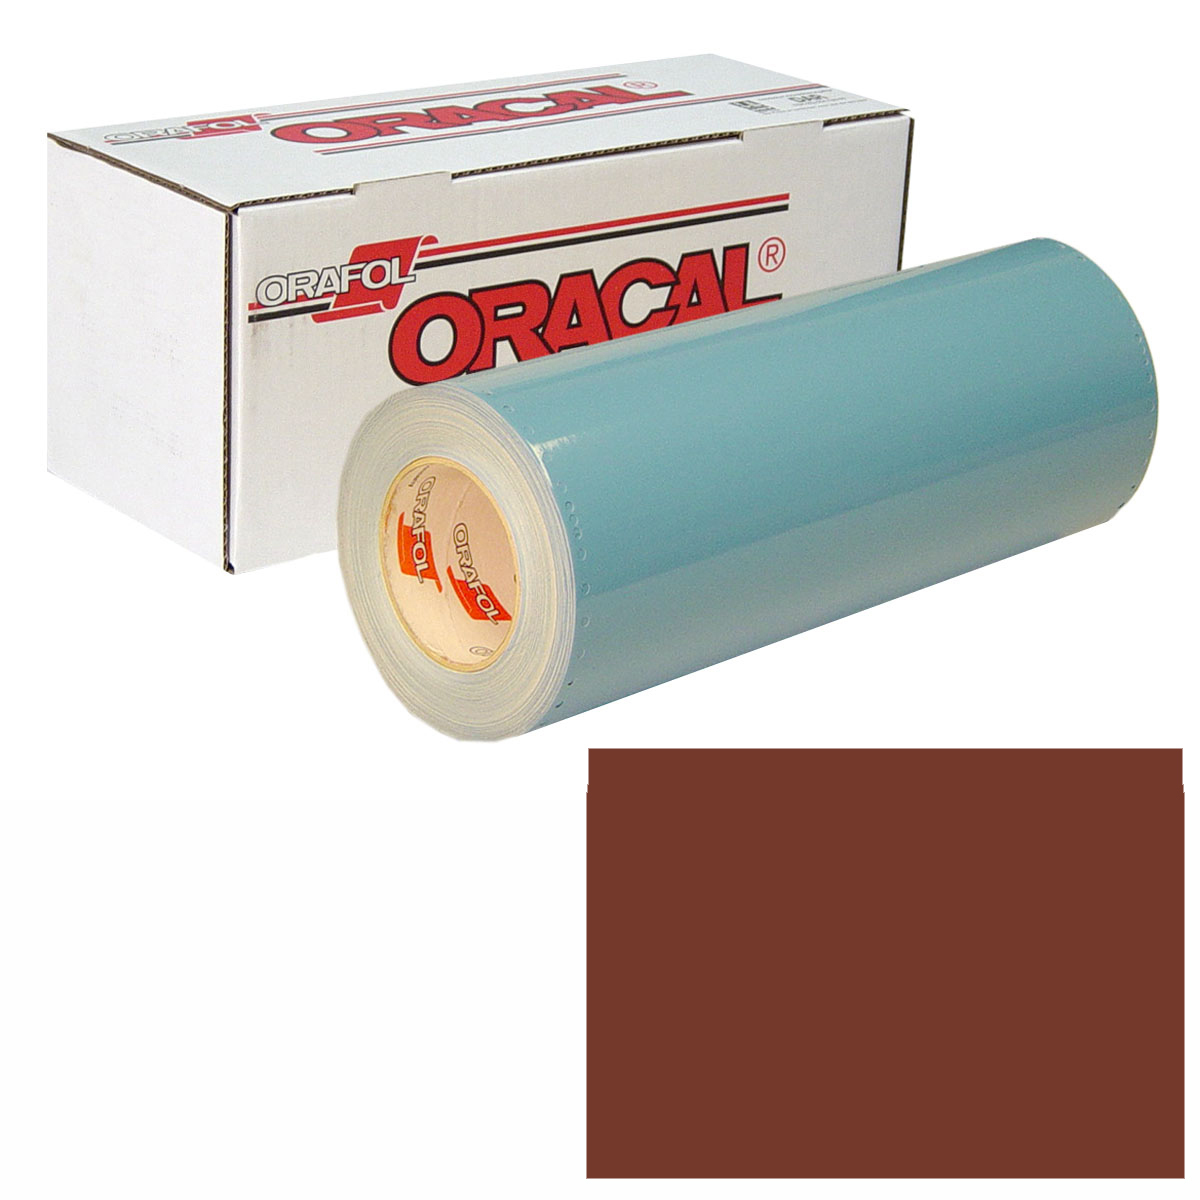 ORACAL 751 30In X 10Yd 079 Red Brown